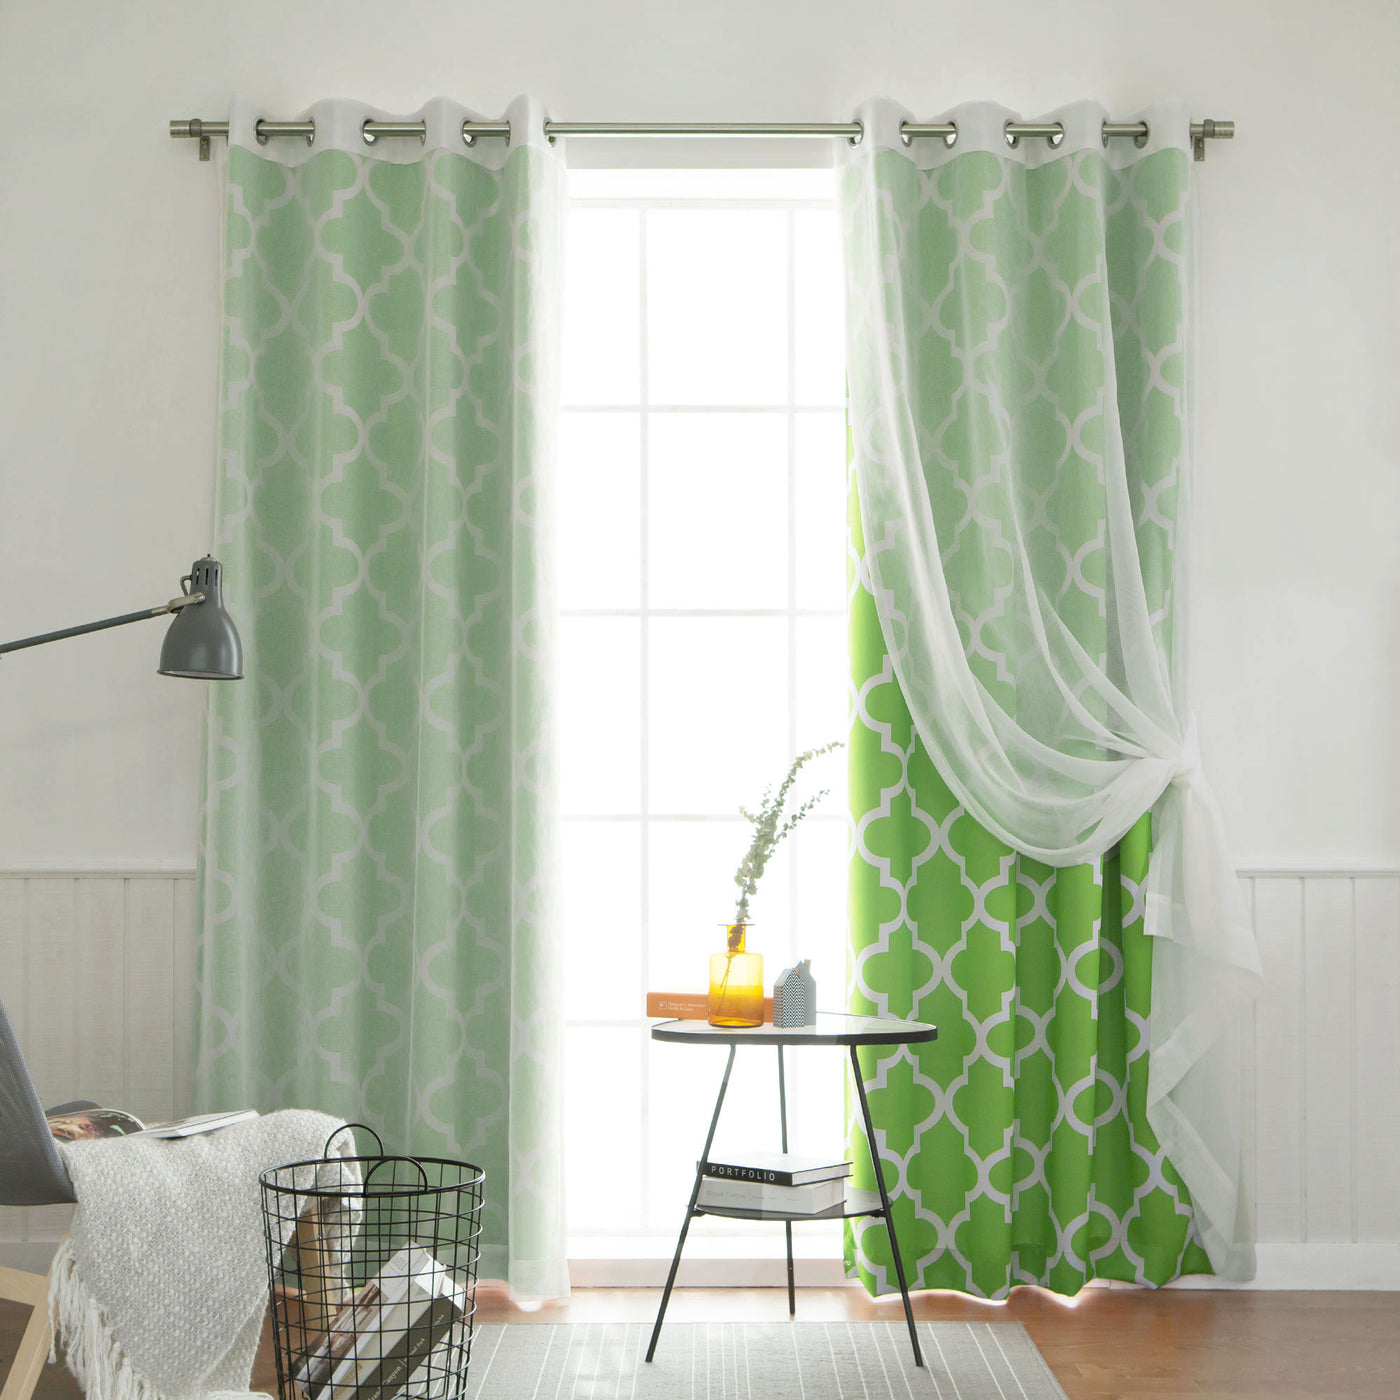 uMIXm Faux Linen & Moroccan Curtains